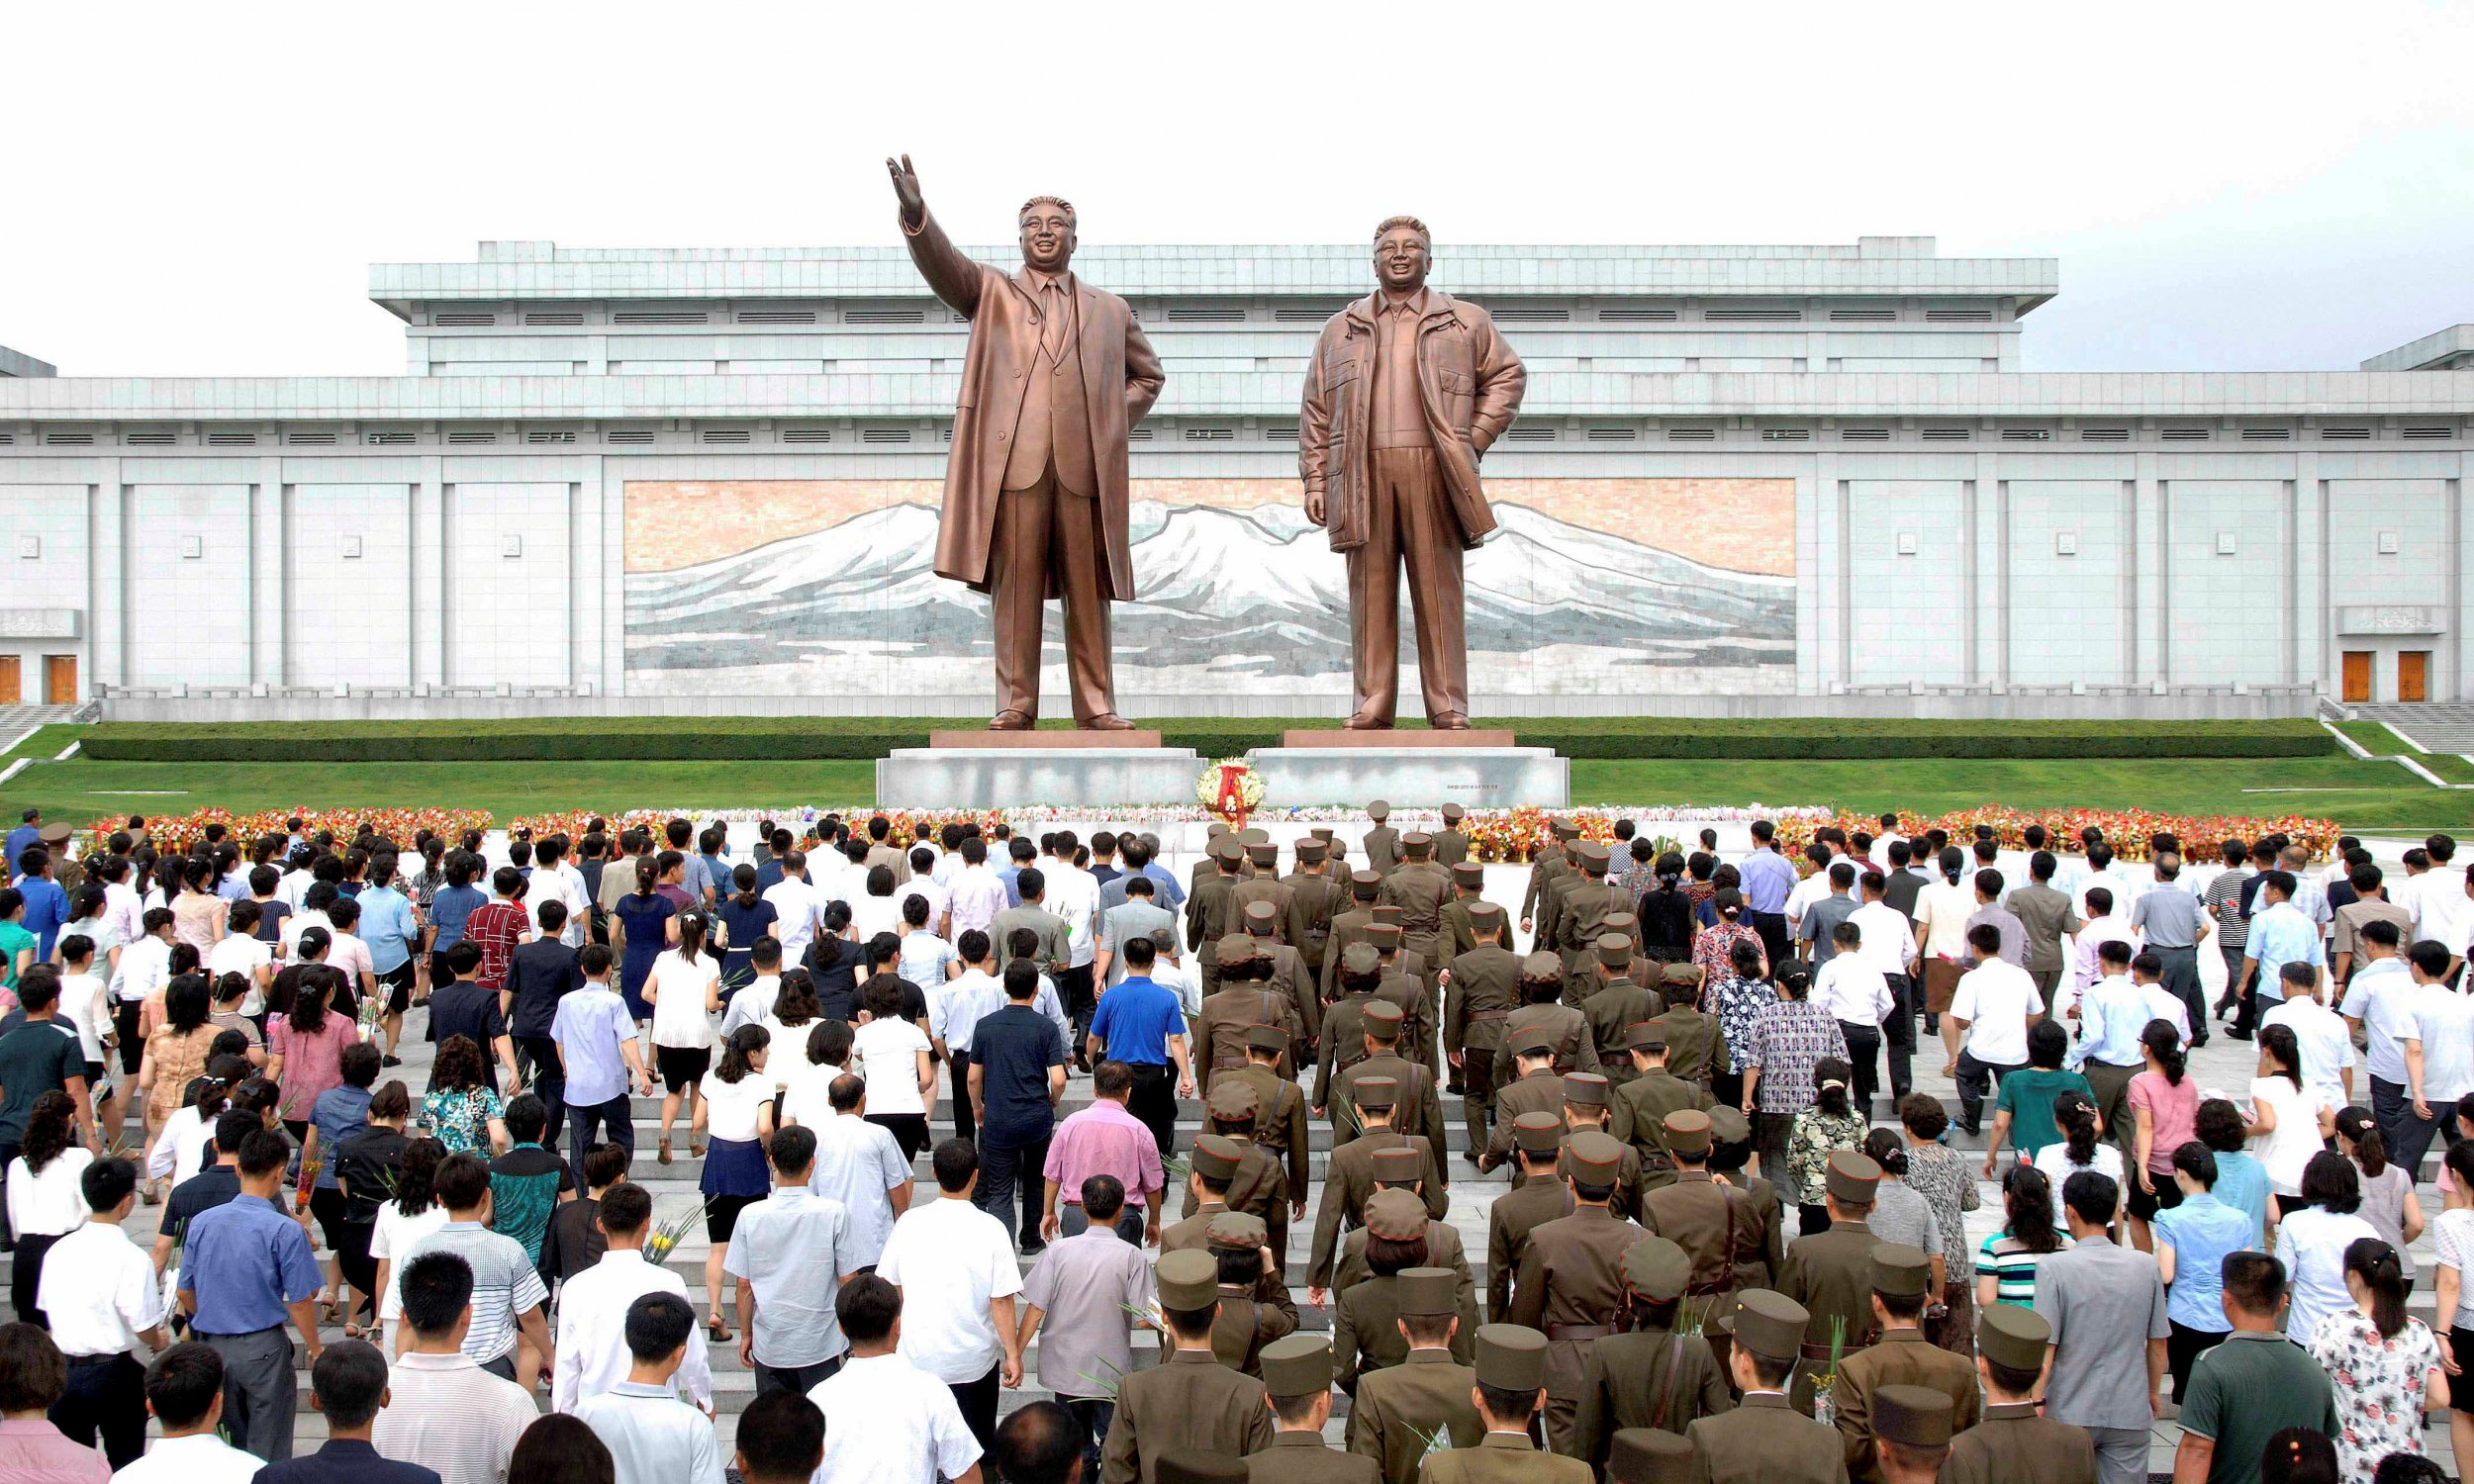 23rd anniversary of demise of Kim Il Sung